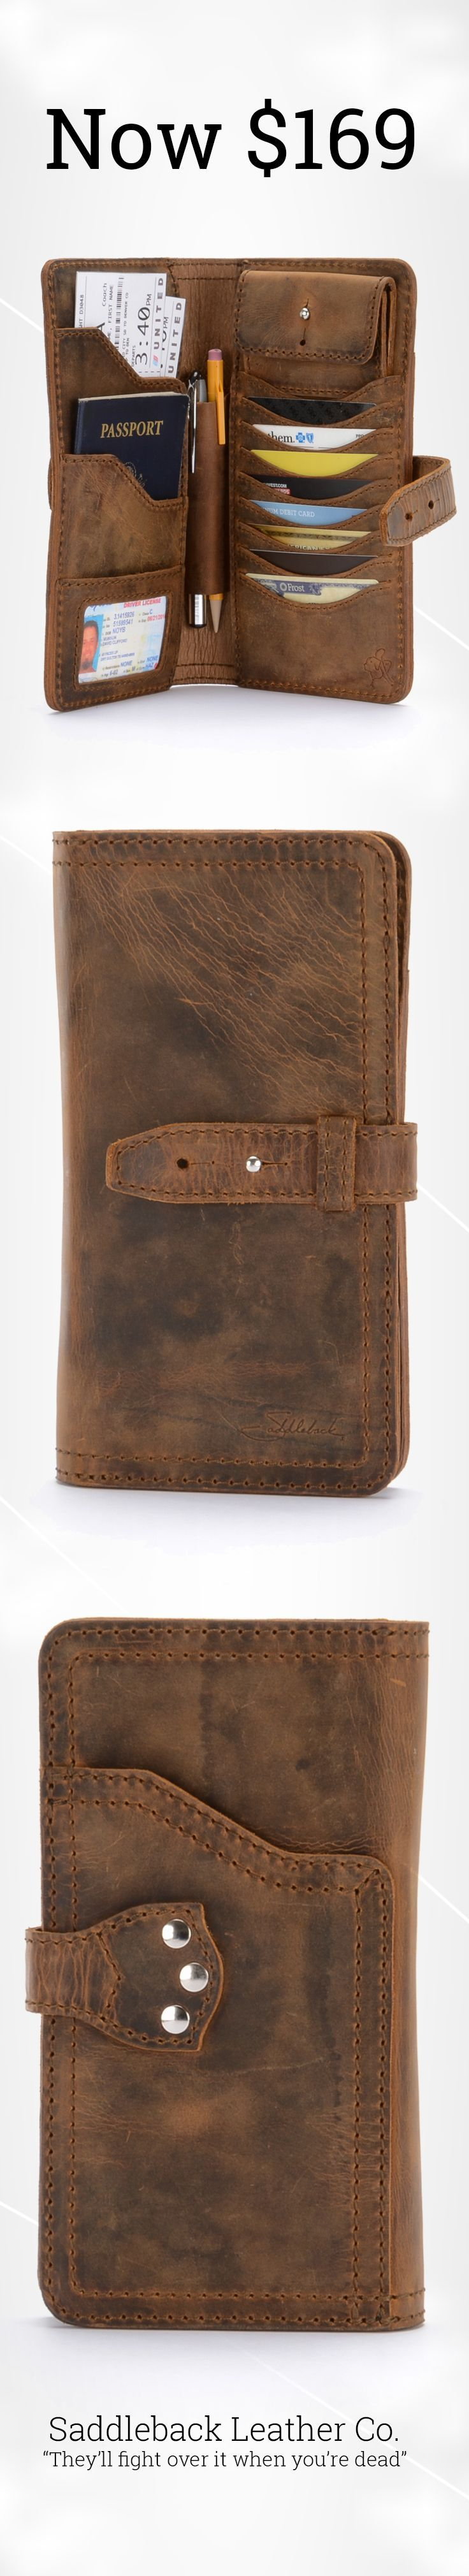 The Big Leather Wallet | Full Grain Leather | 100 Year Warranty | $169.00